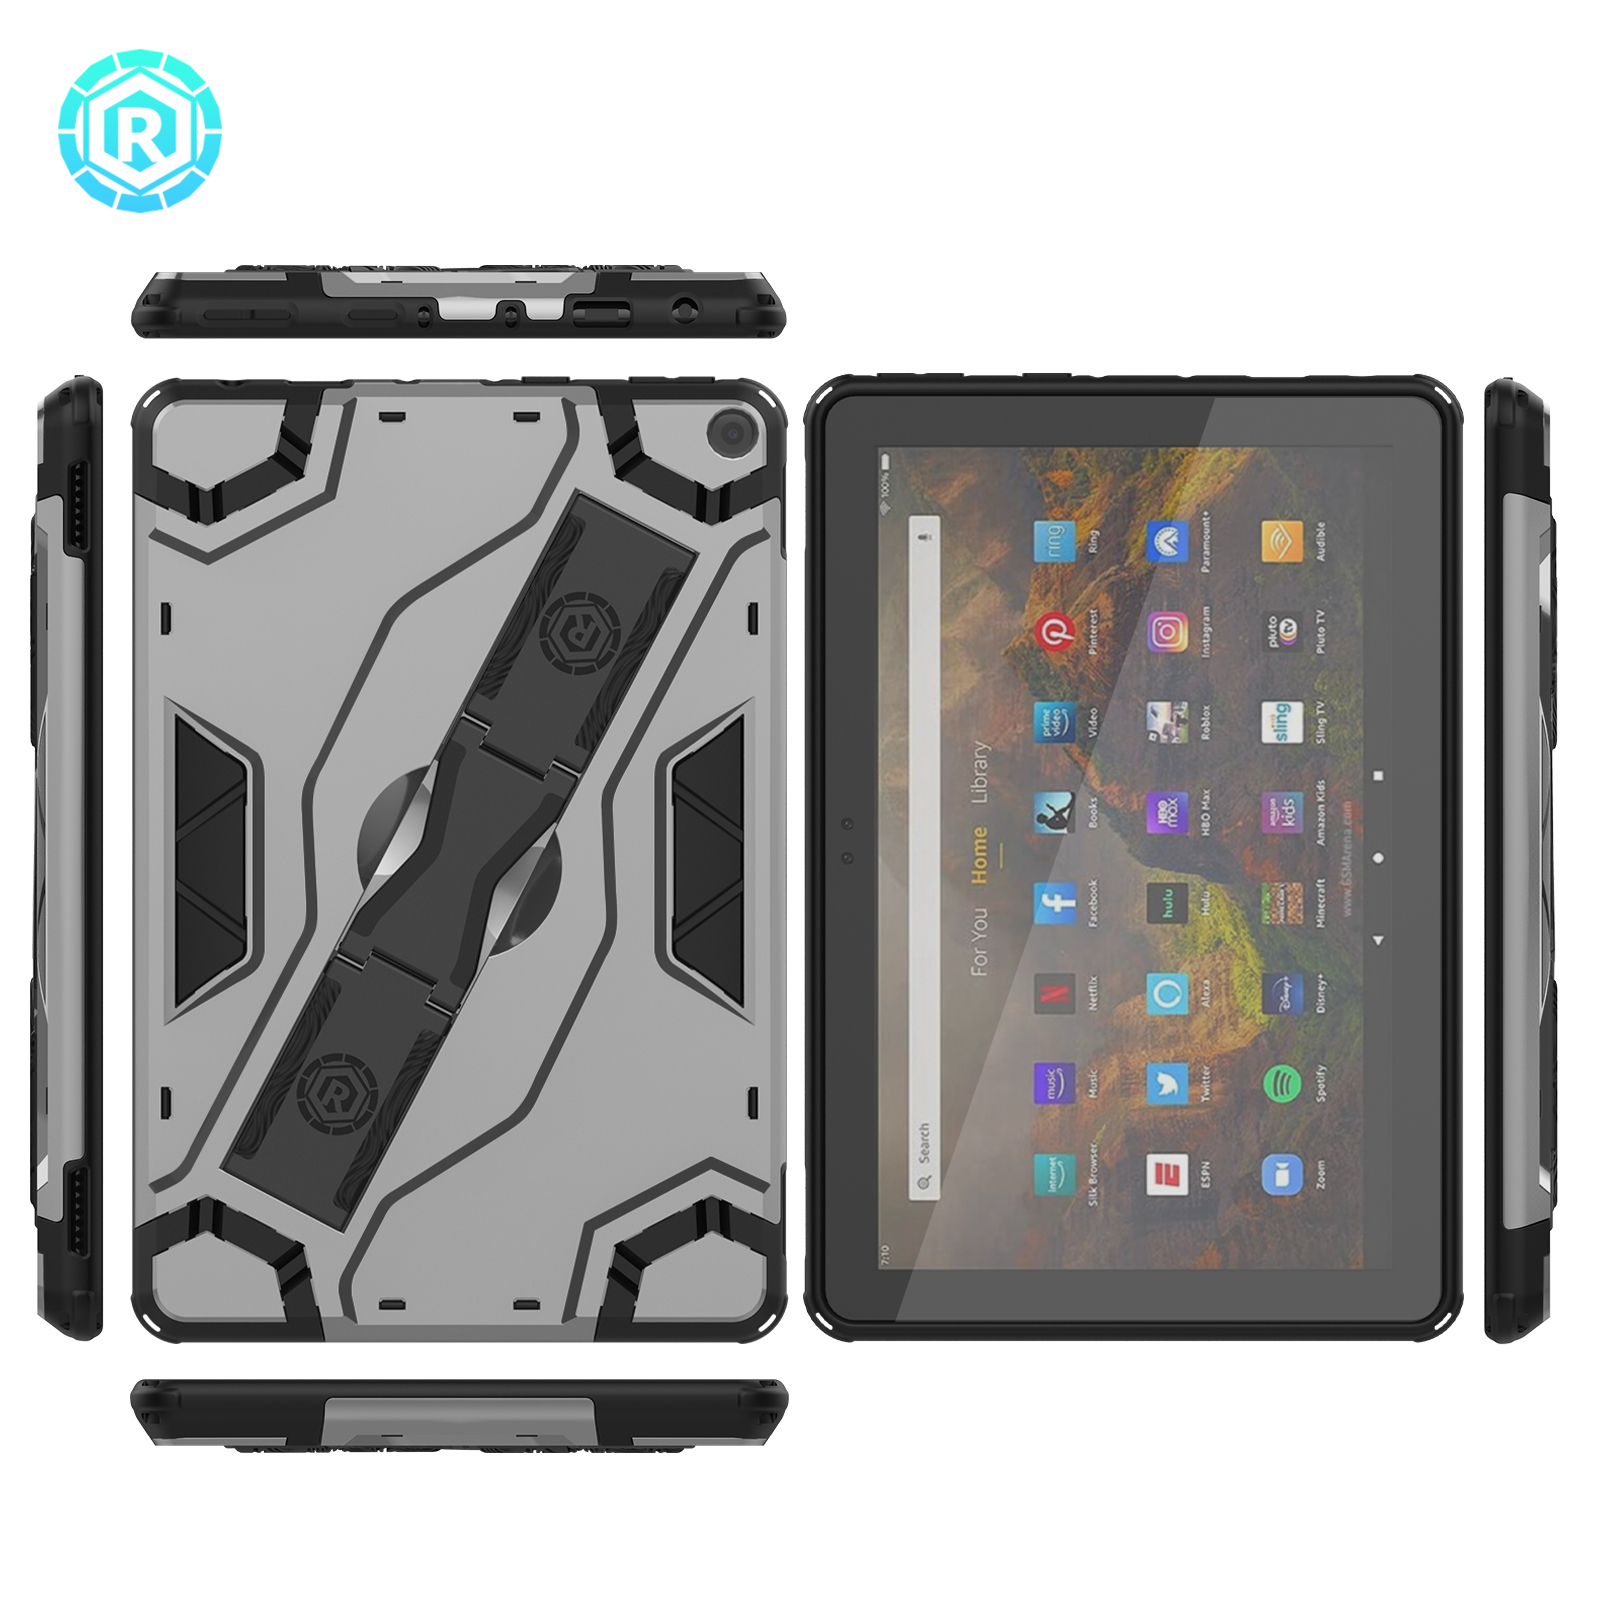 Escort Tablet Case For Amazon Fire HD 10 2021